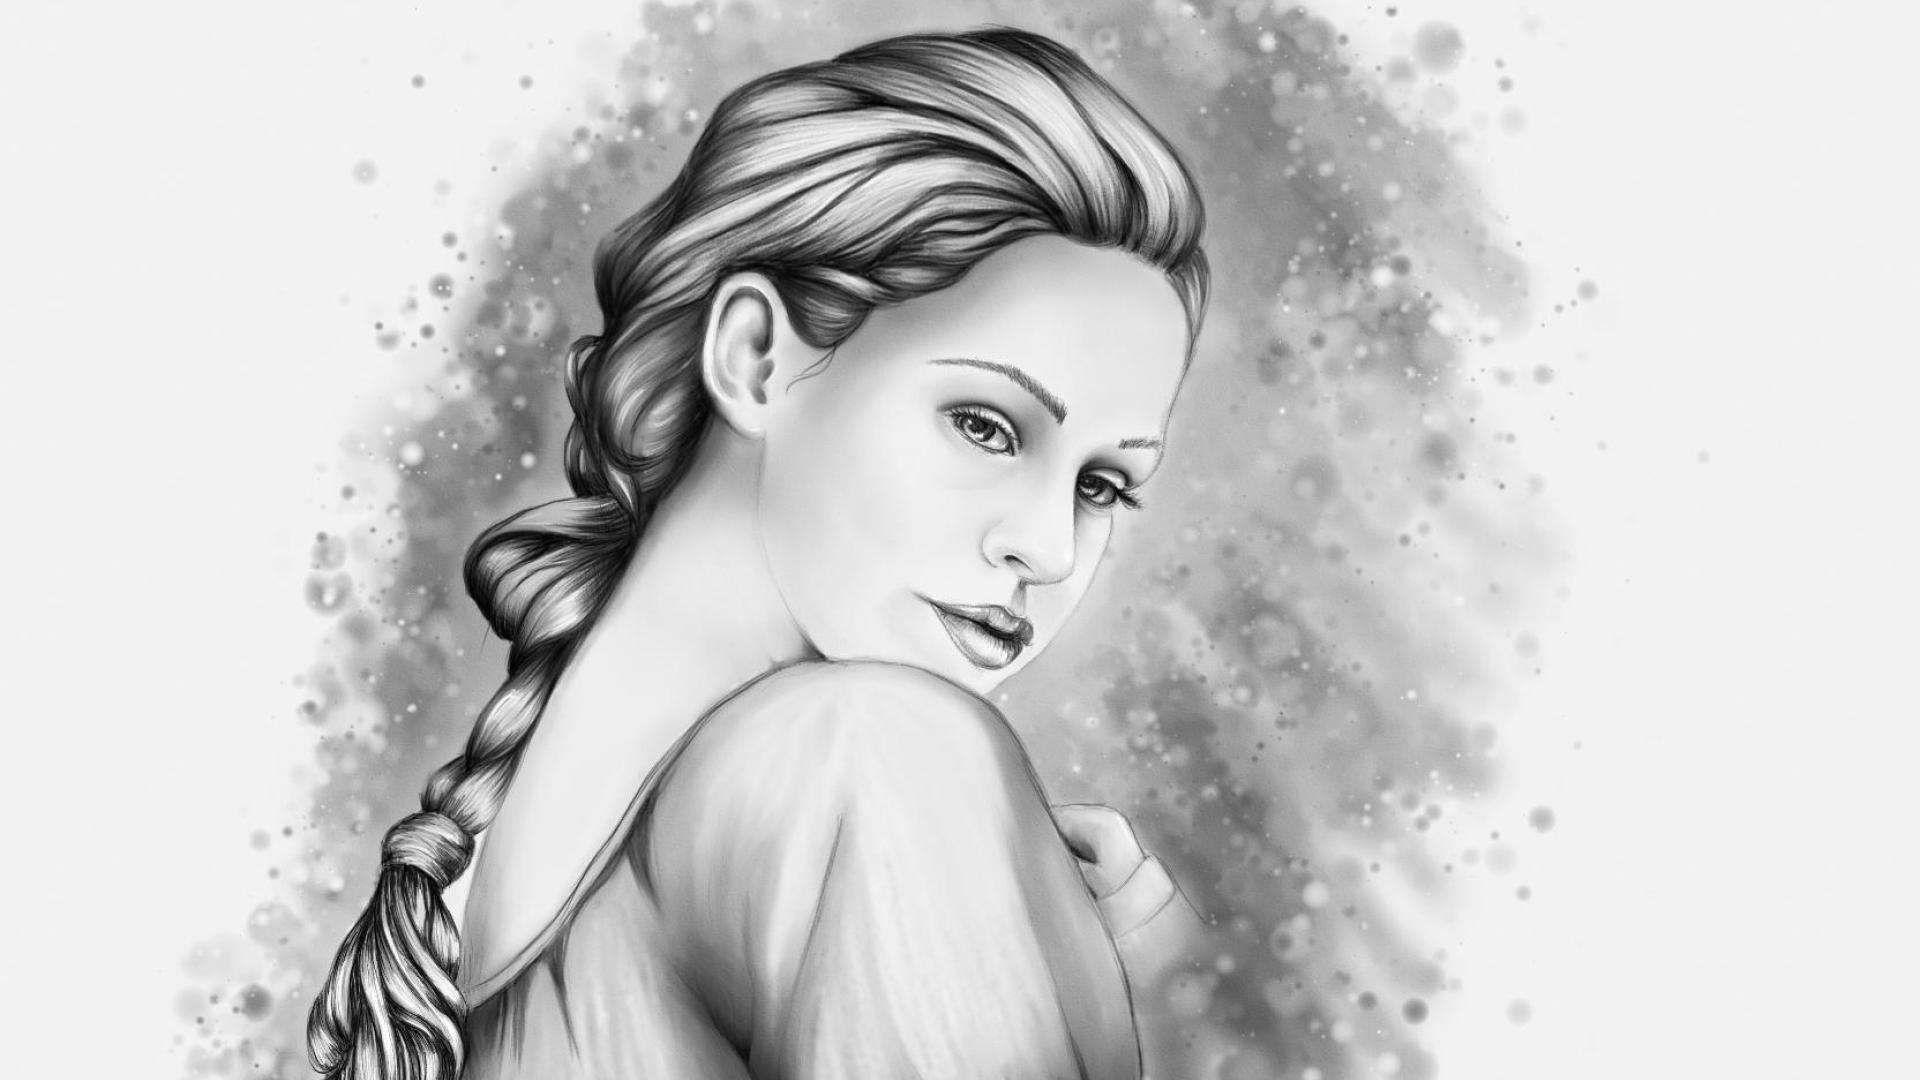 Pencil art wallpaper gallery girl pencil drawing hd wallpapers